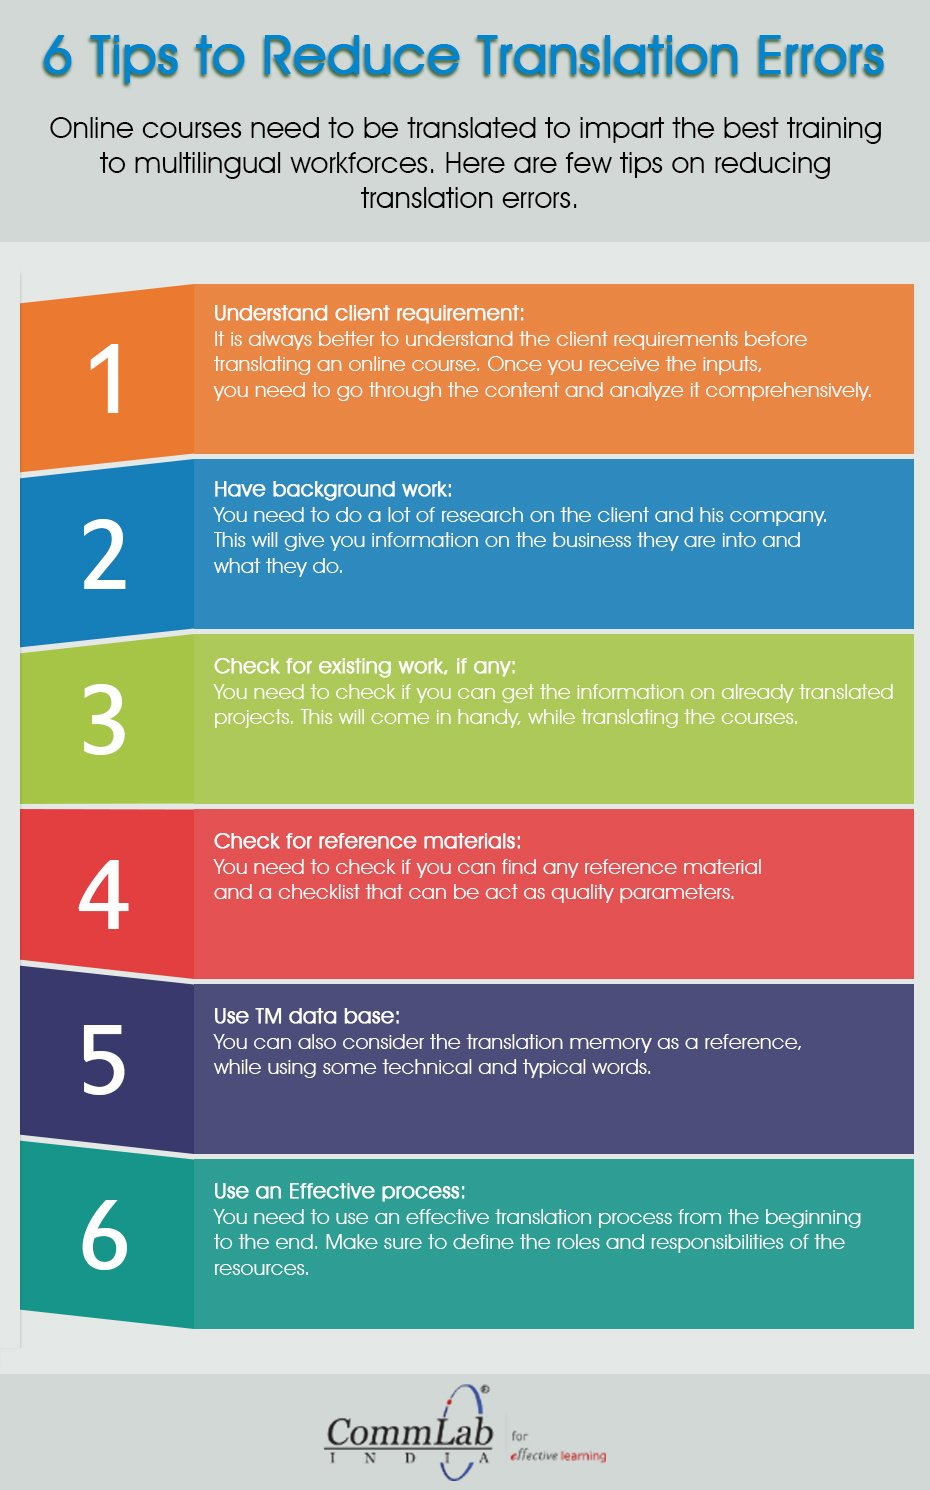 6 Tips to Reduce Translation Errors -  An Infographic